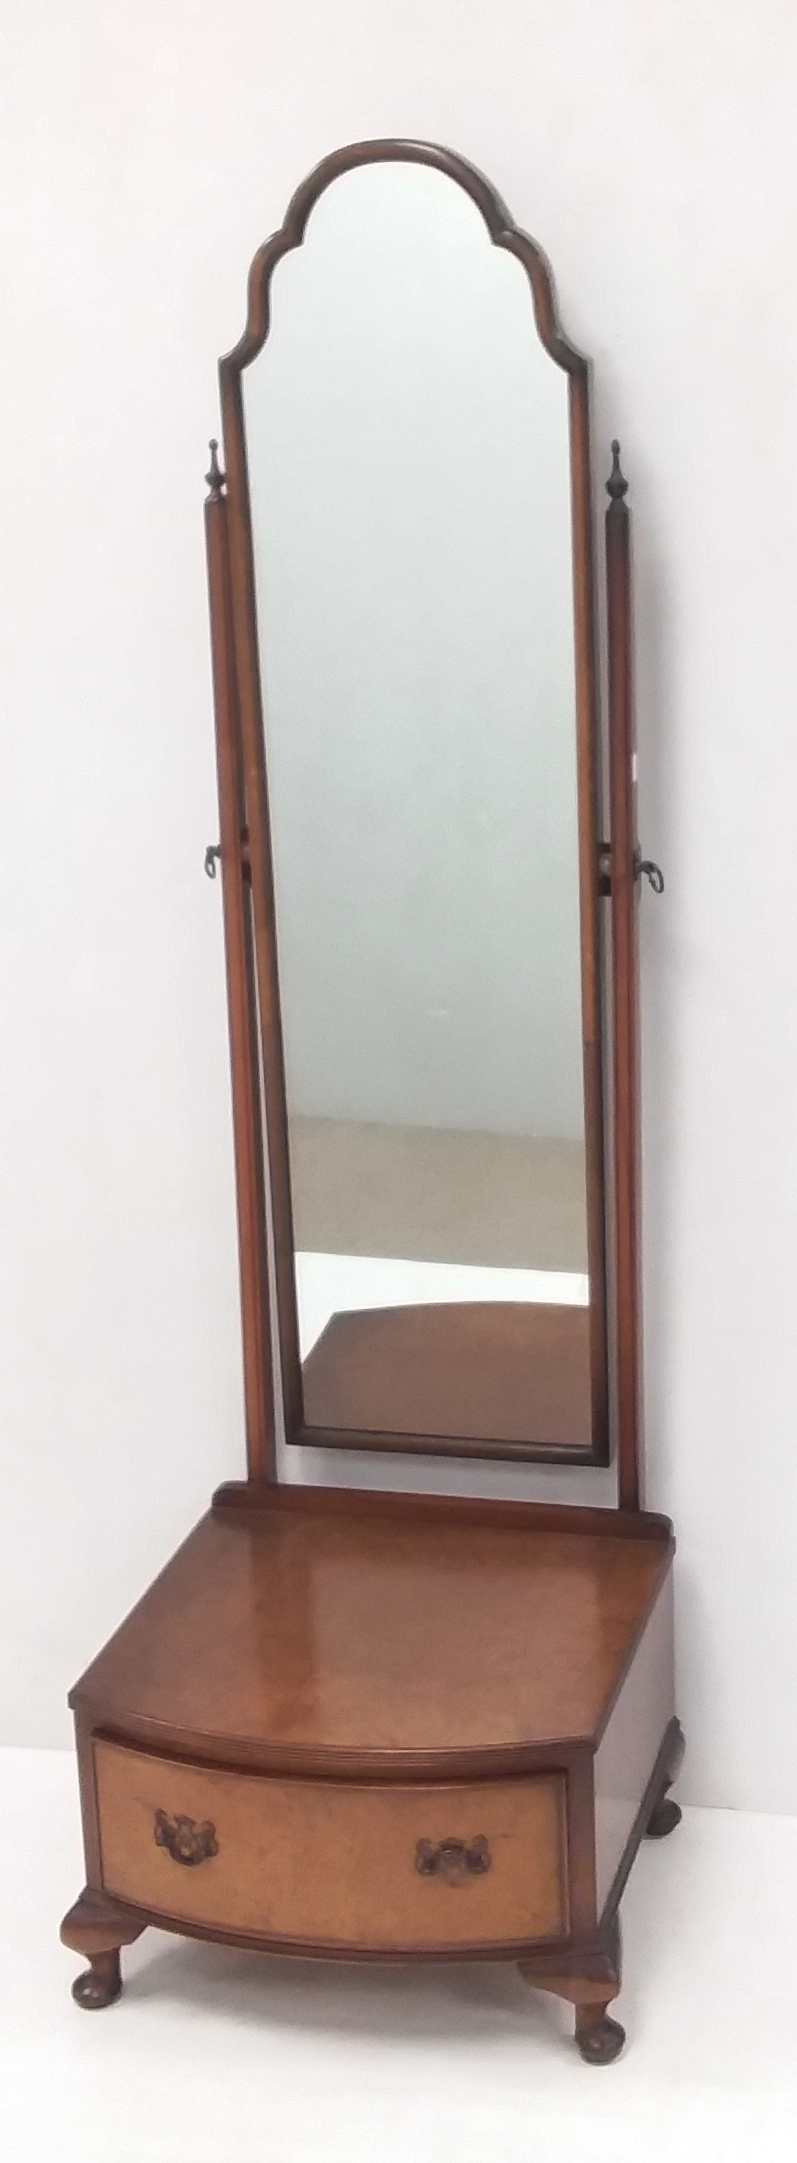 Lot 42 - Walnut Cheval Mirror with Single Drawer to Base